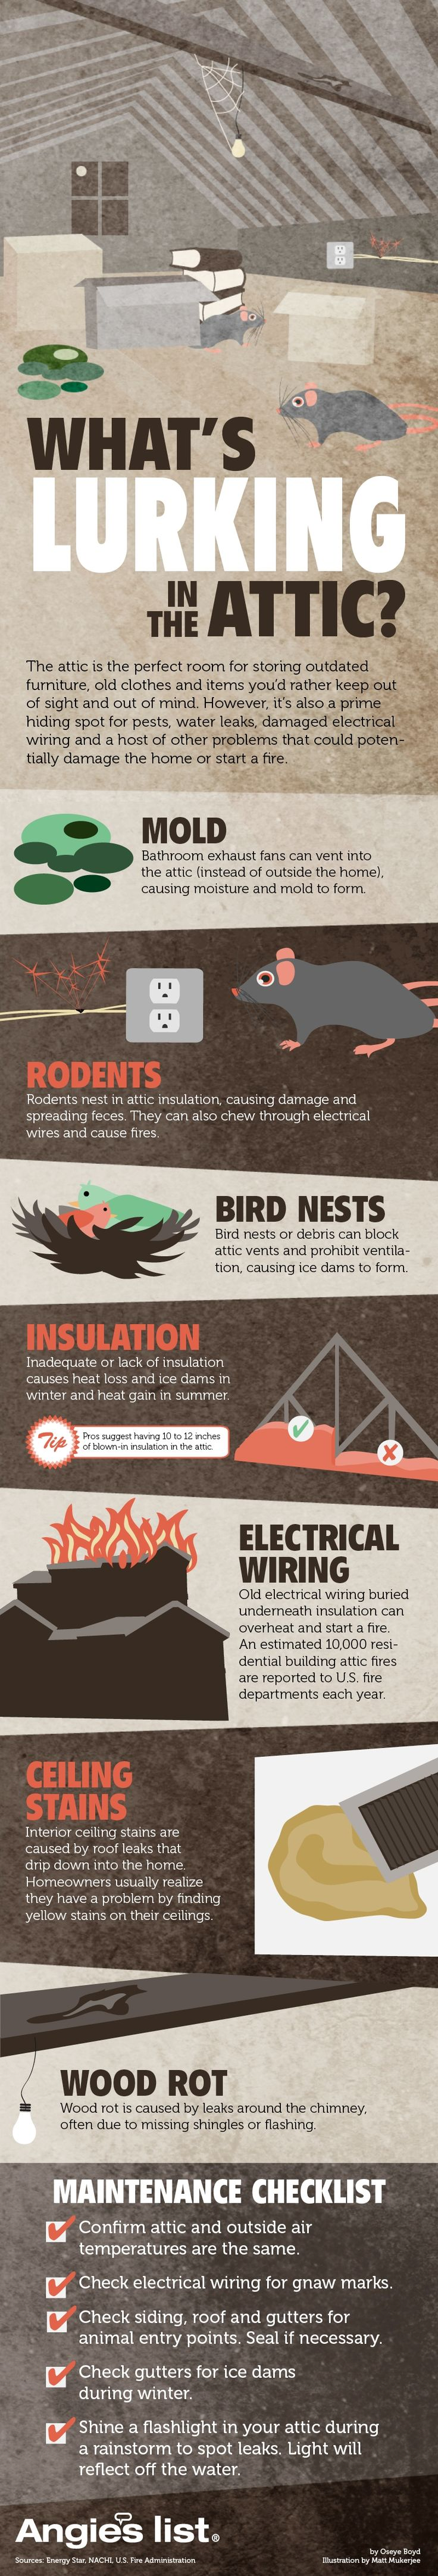 Mice Rats Electrical Fires Blocked Ventilation Faulty Insulation Mold Rot Problems Hiding In The Attic Home Maintenance Attic Wood Furniture Diy